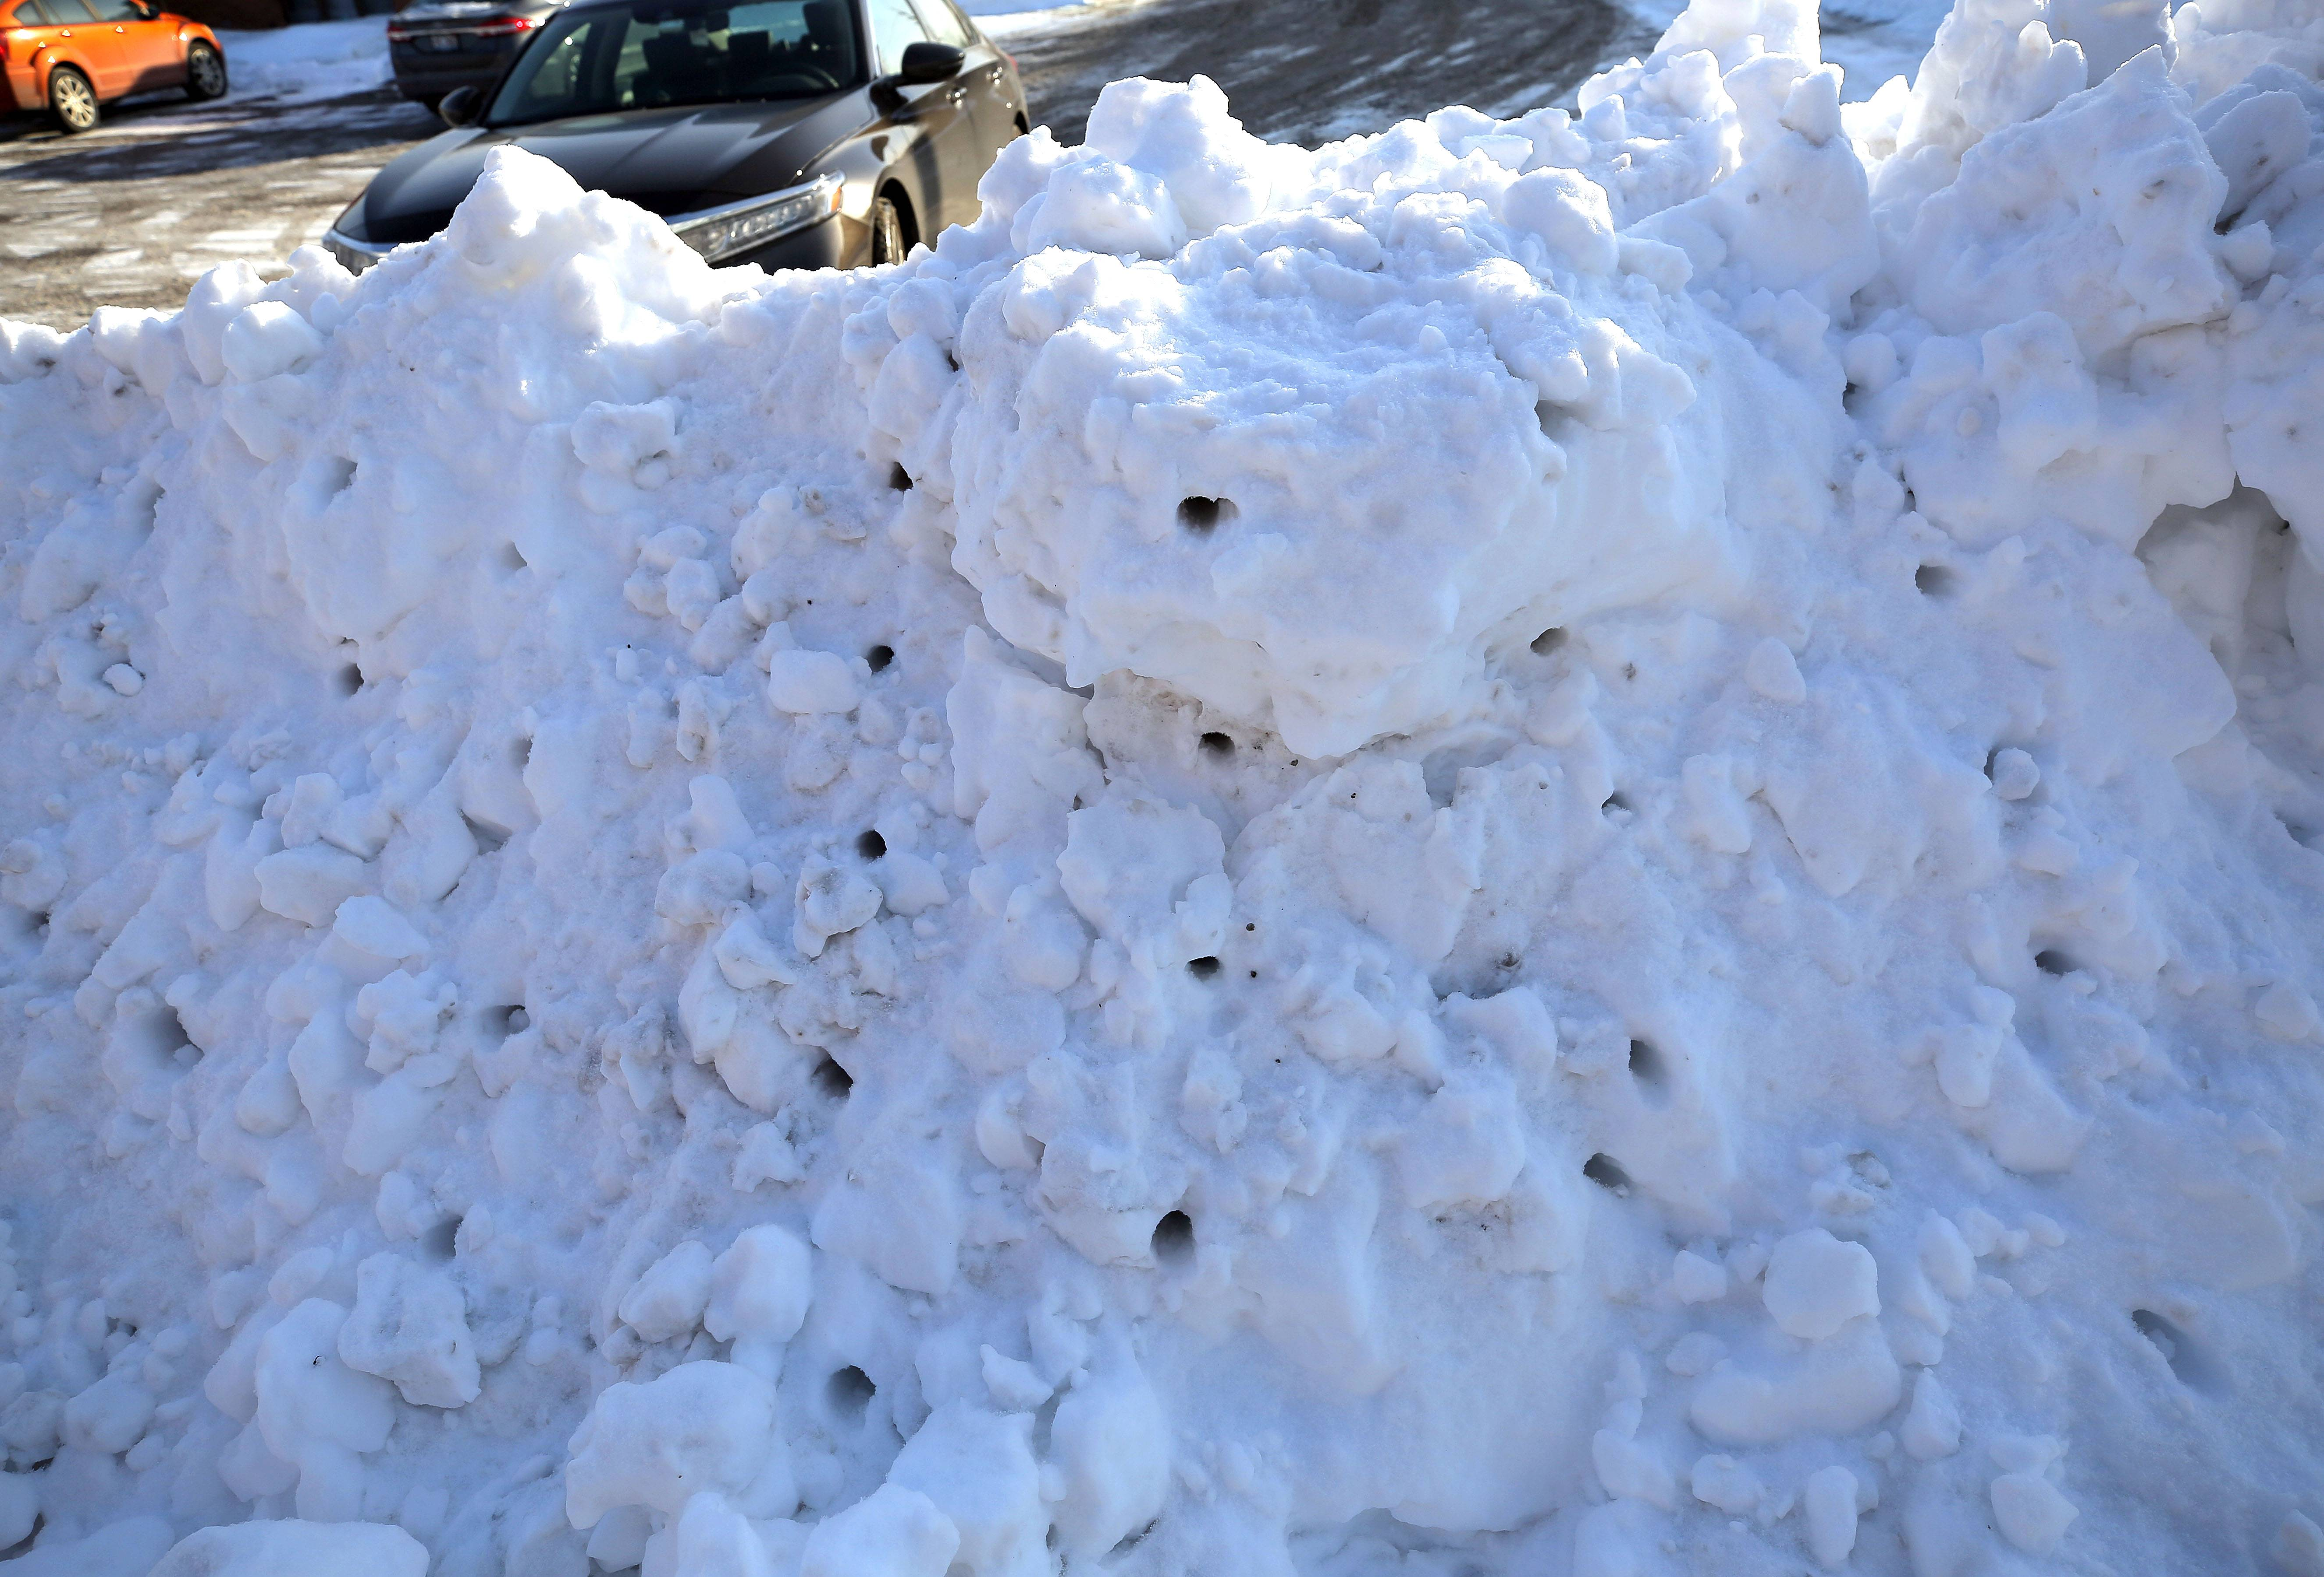 Holes in a snow bank show where rescuers searched for a child who died after a snow fort collapsed on her at Rothem Church in Arlington Heights.